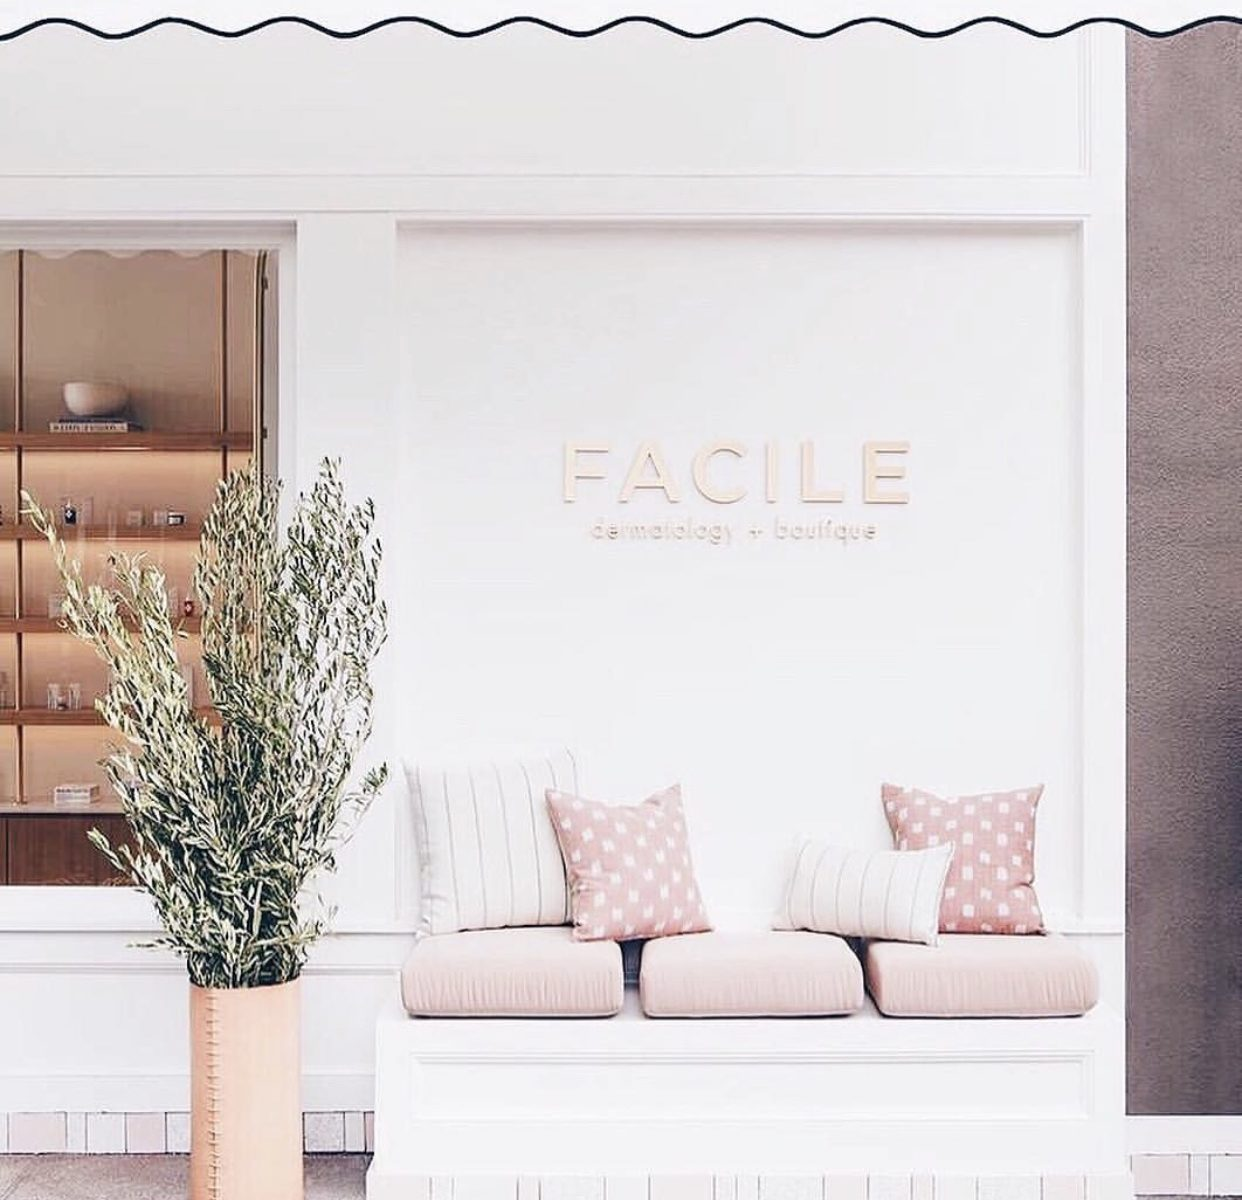 Facile_Beauty_Store_Pasadena